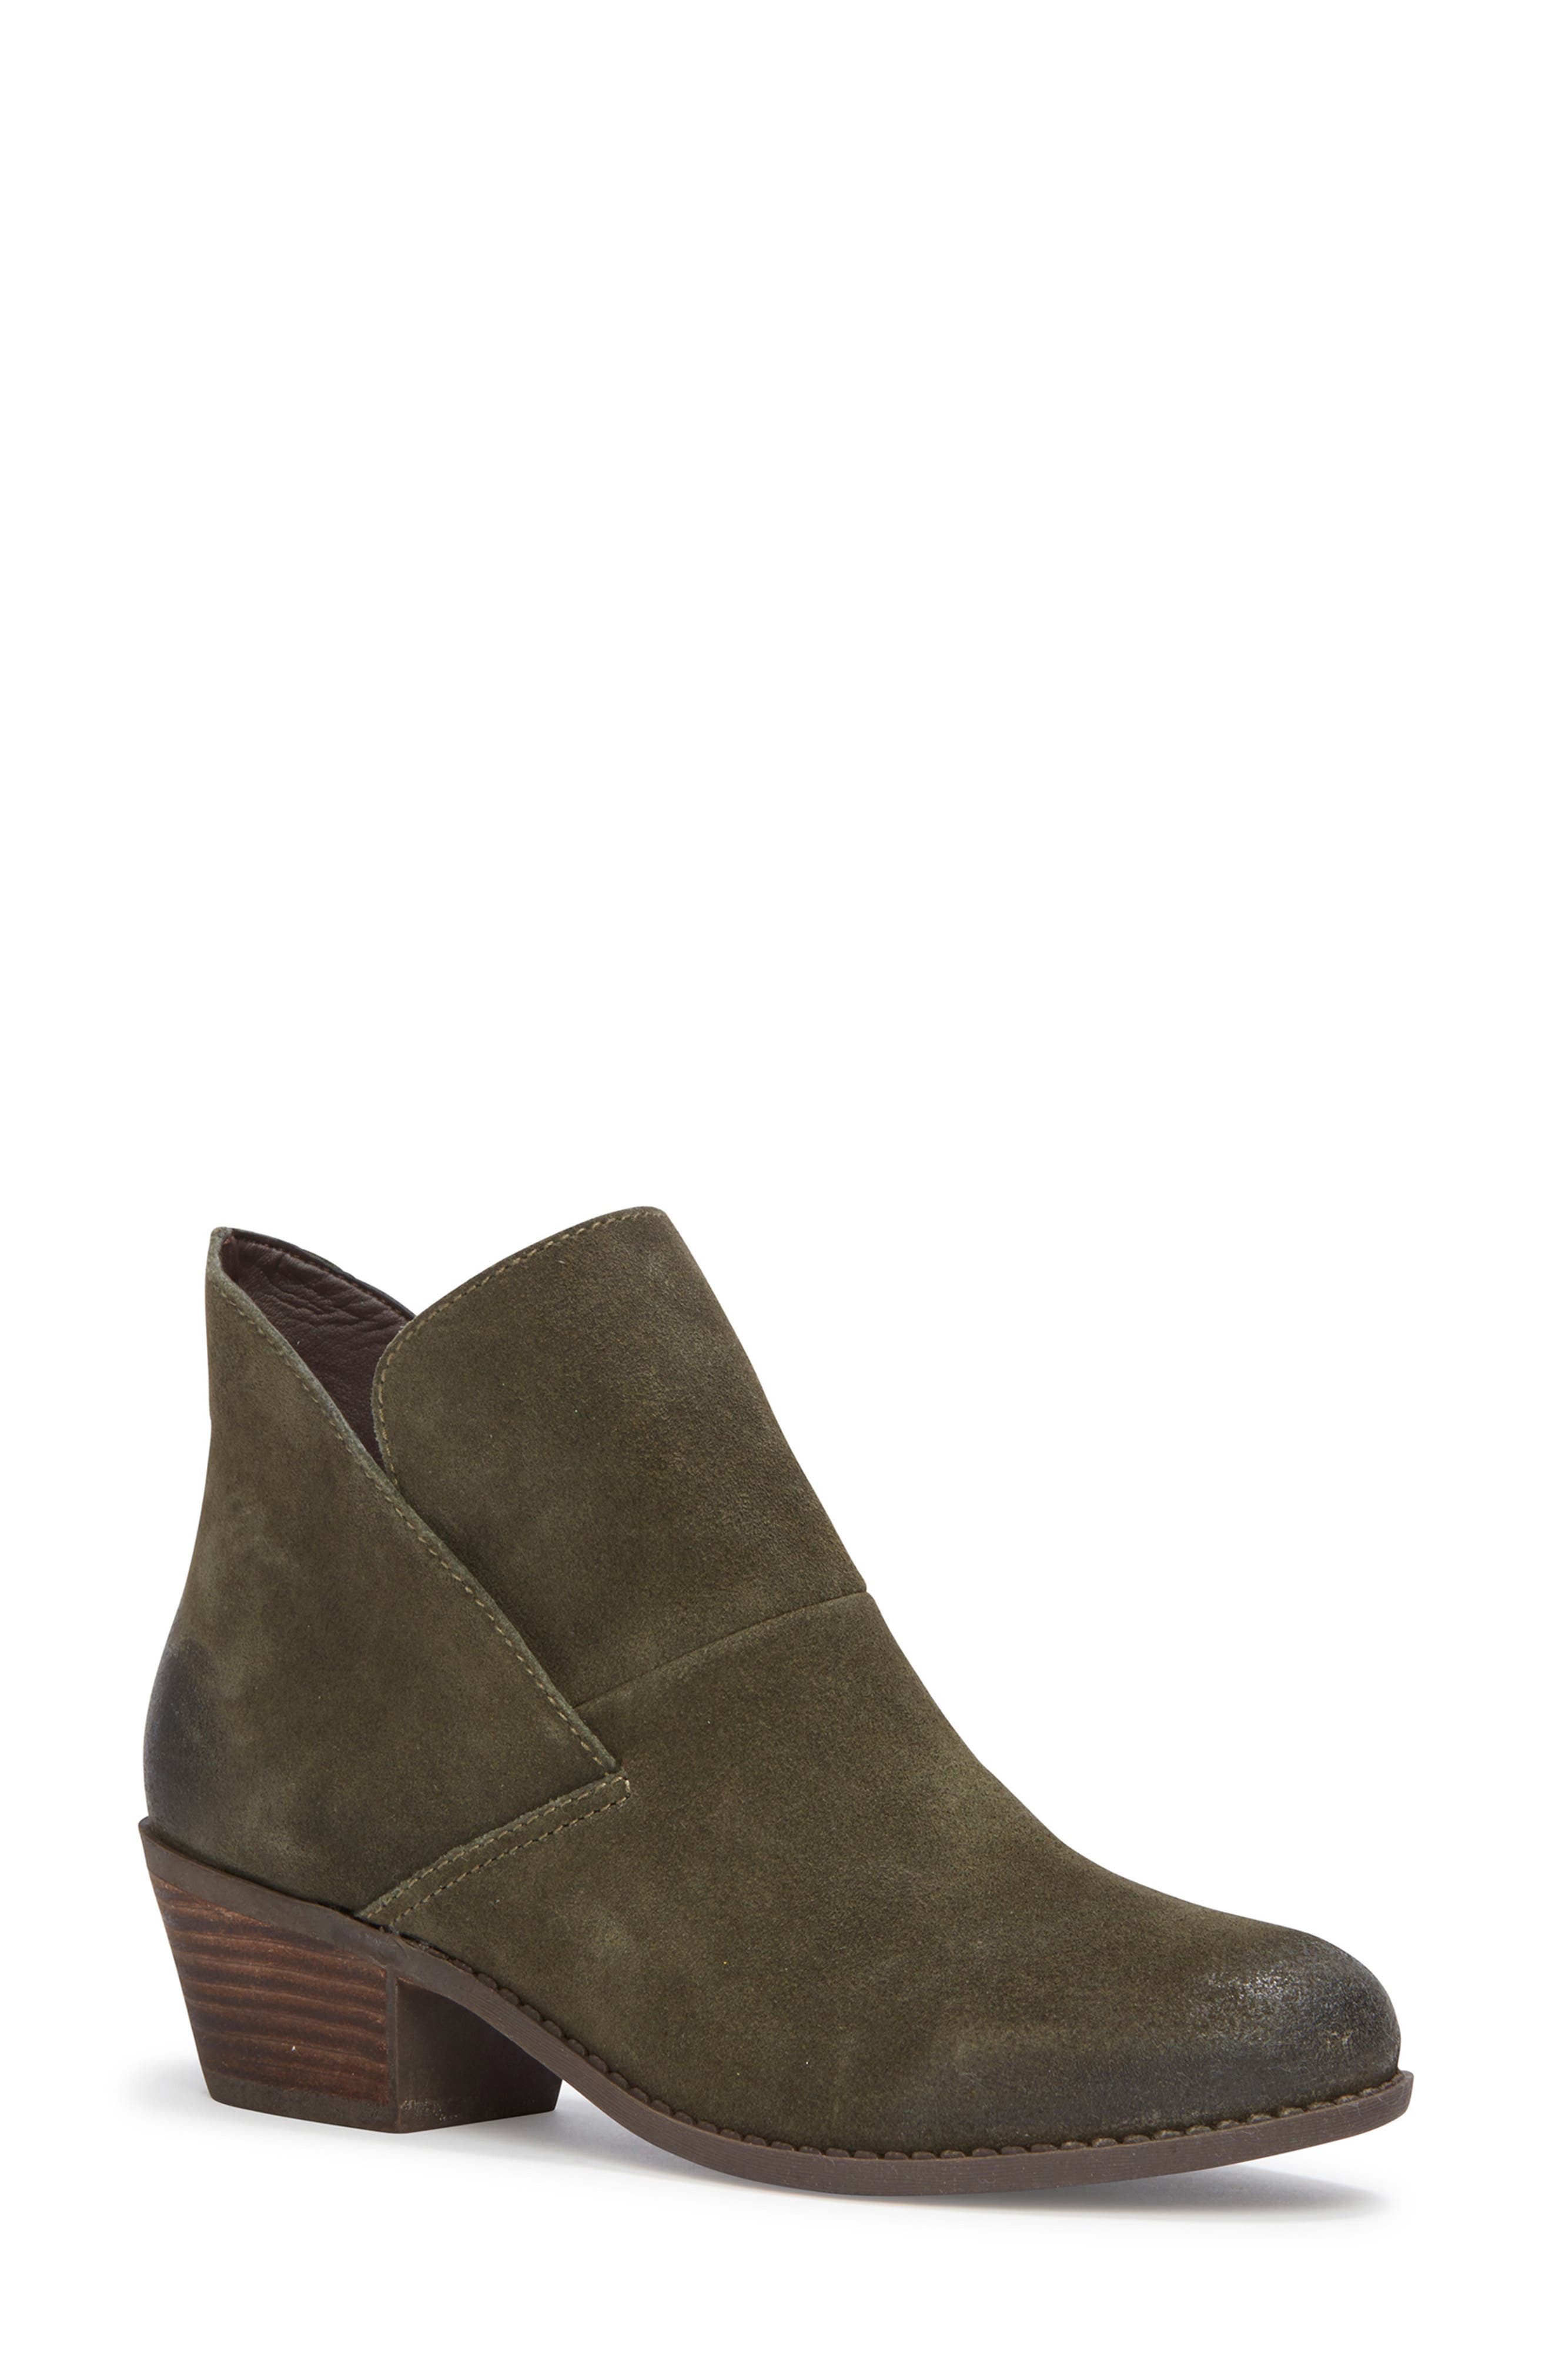 Me Too Zena Ankle Boot,                         Main,                         color, Moss Suede